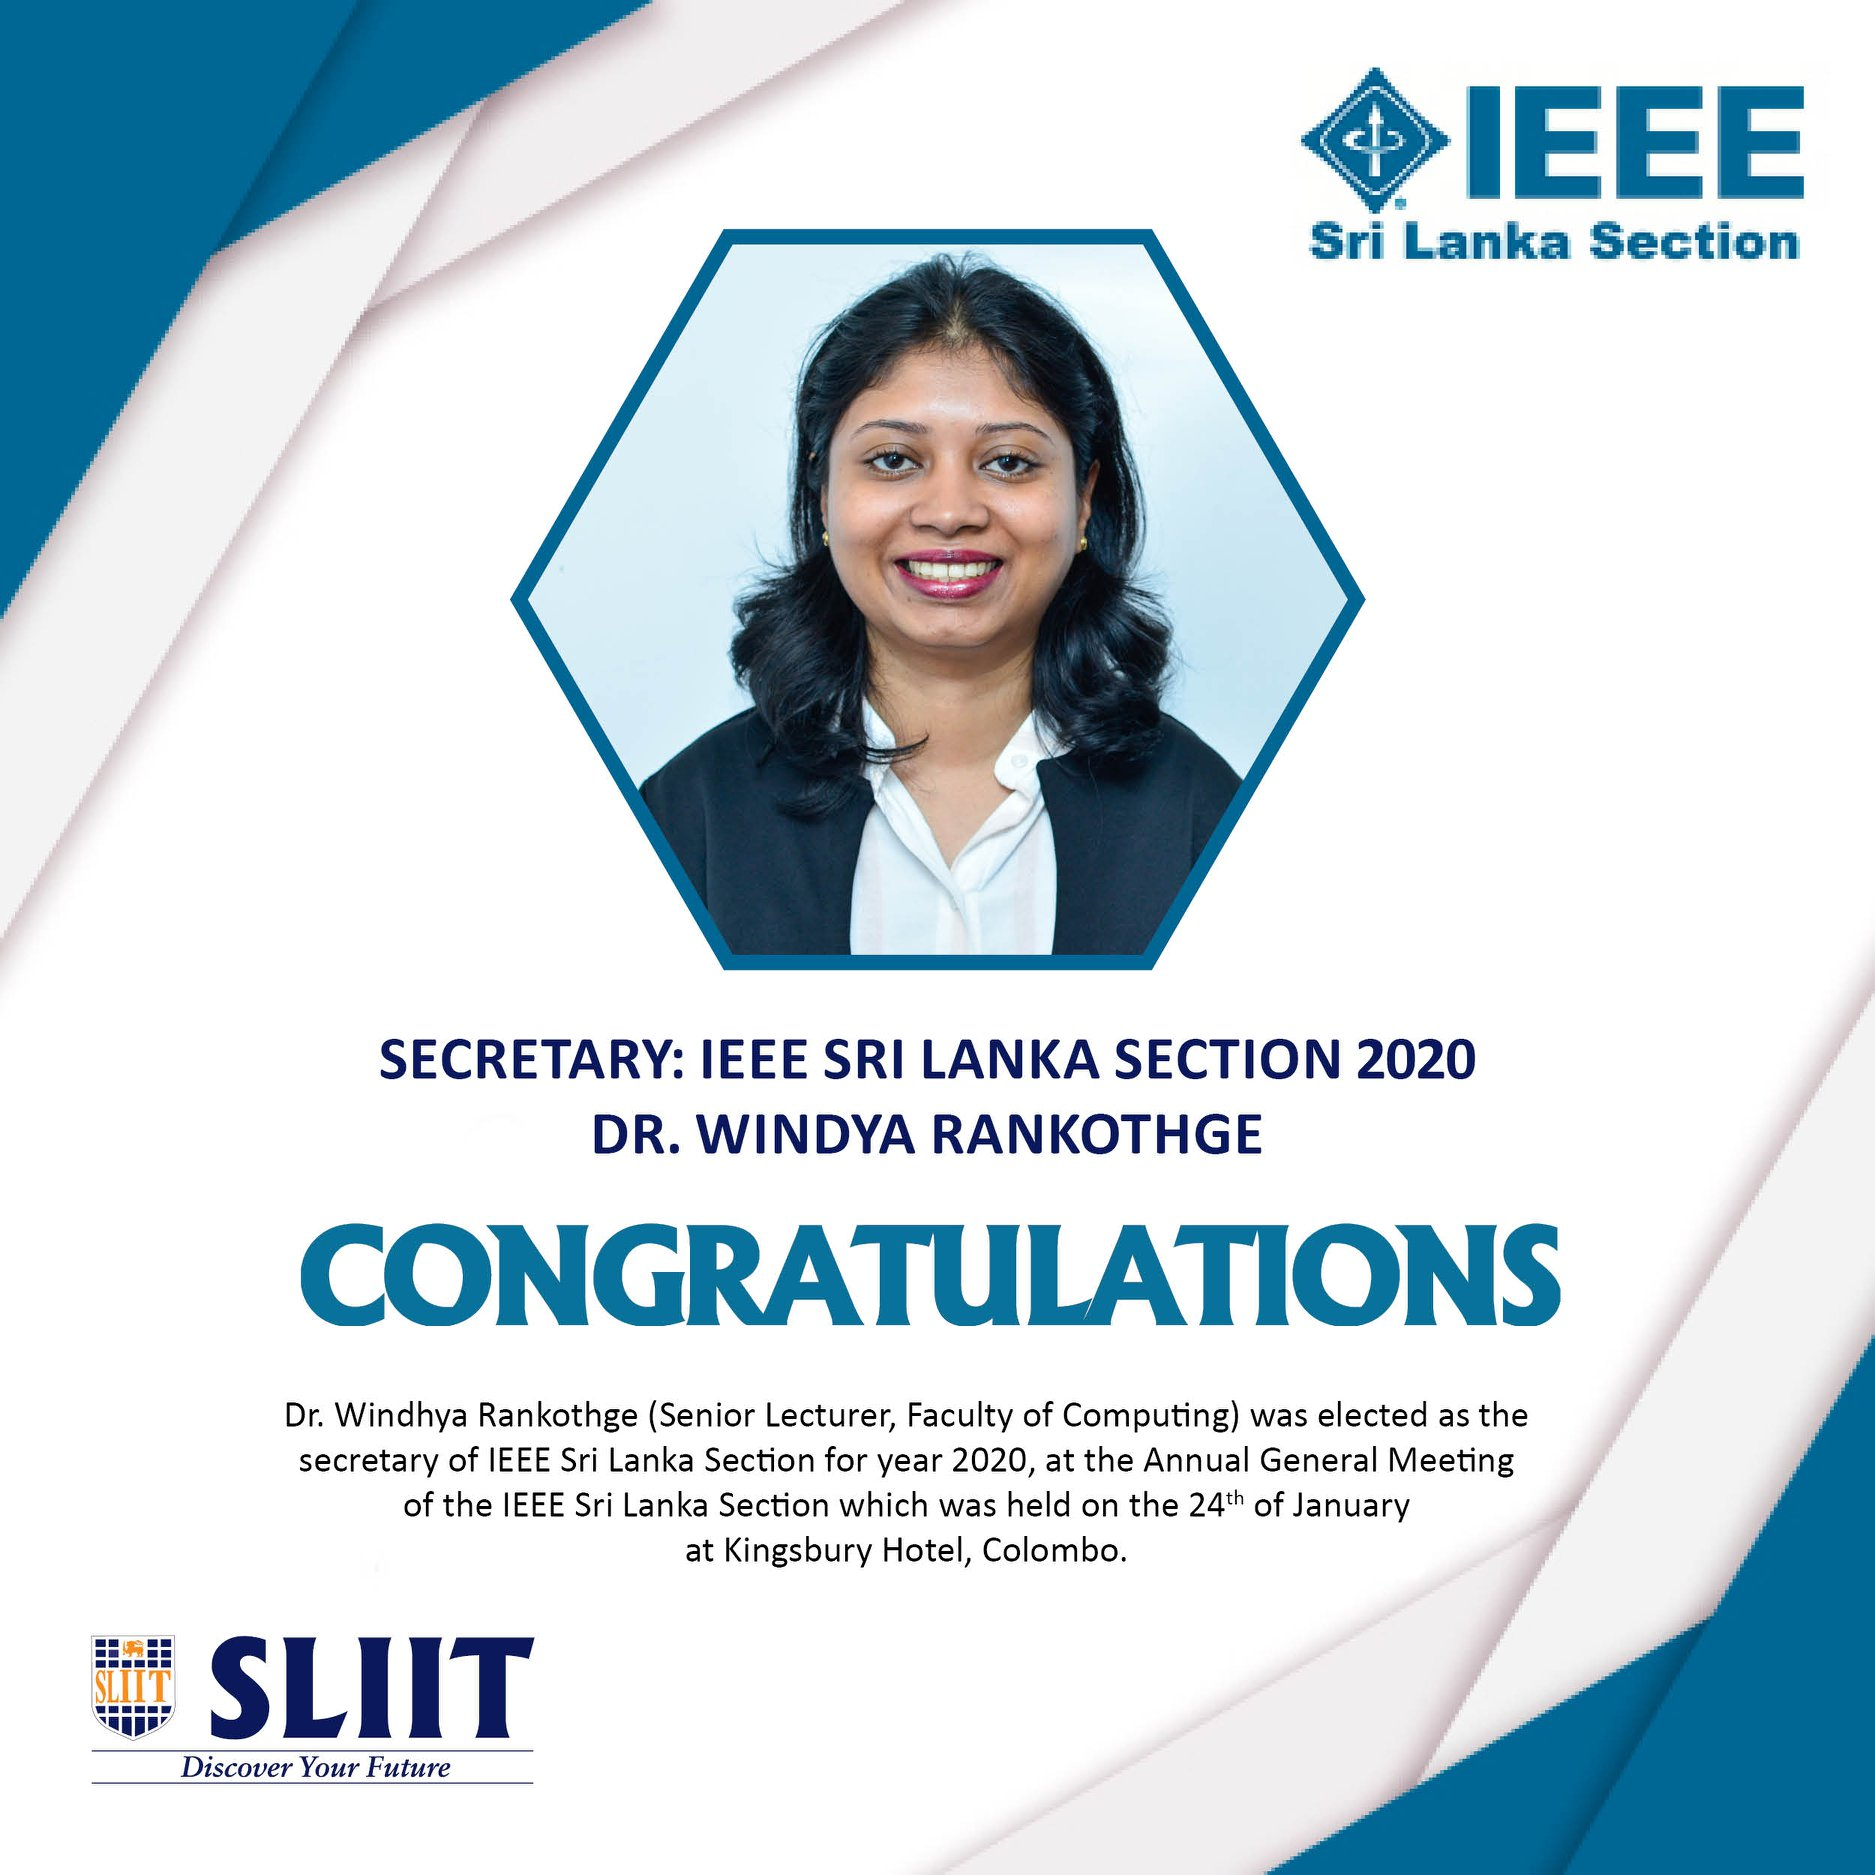 Congratulations-Dr.-Windhya-Rankothge-Secretary-of-IEEE-Sri-Lanka-Section-for-year-2020